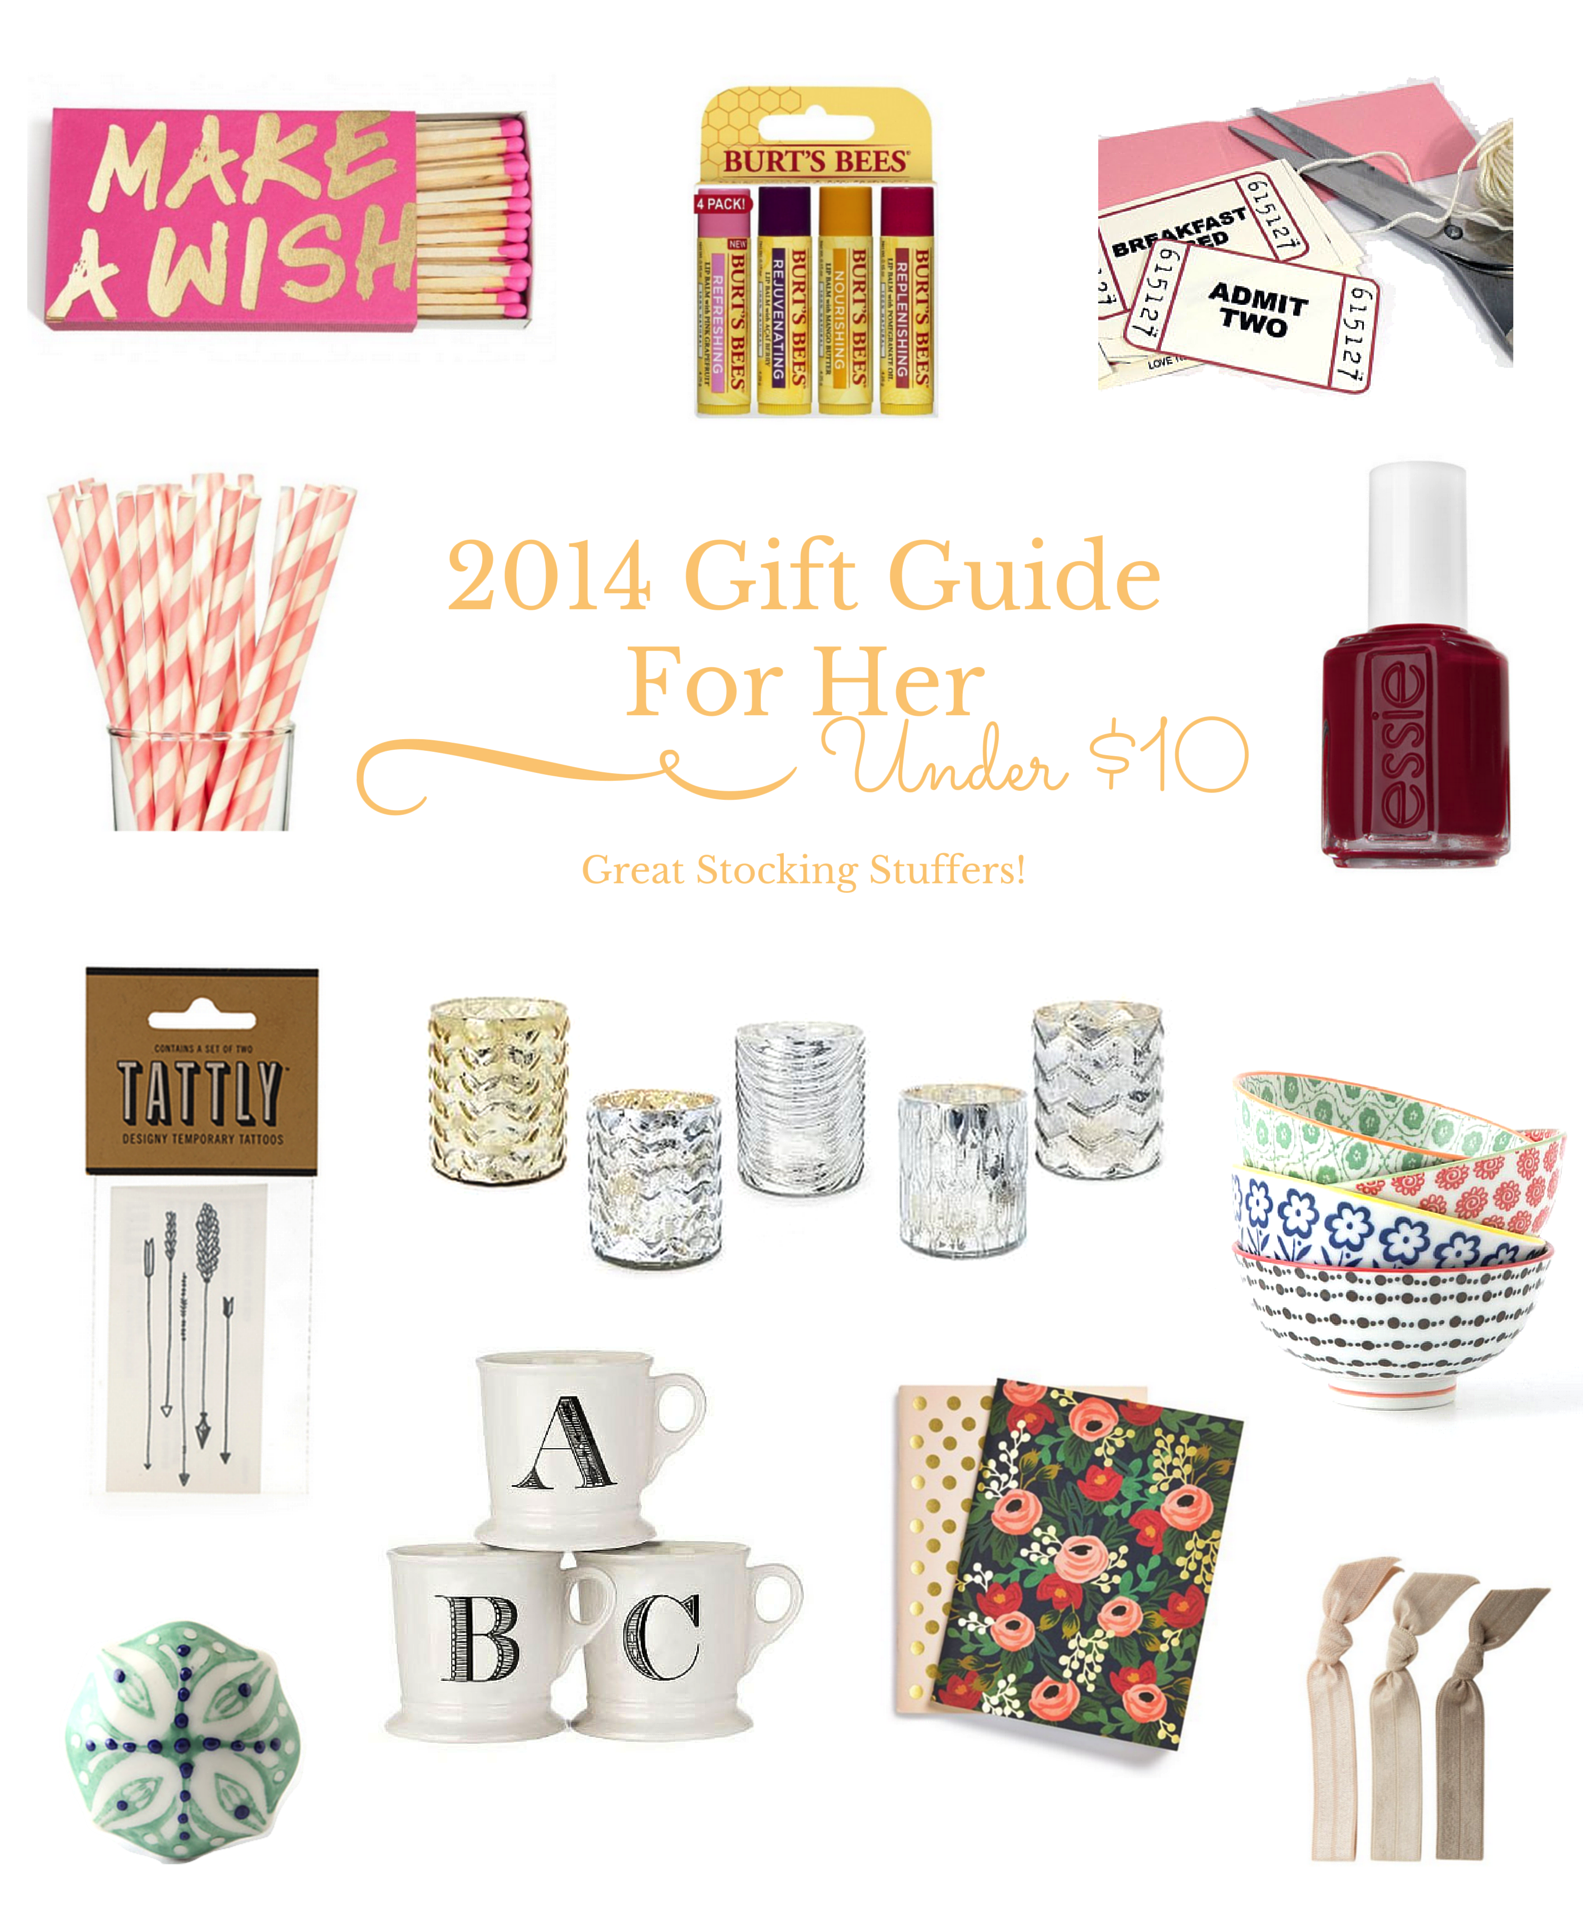 2014 Holiday Gift Guide For Her - $10 And Under